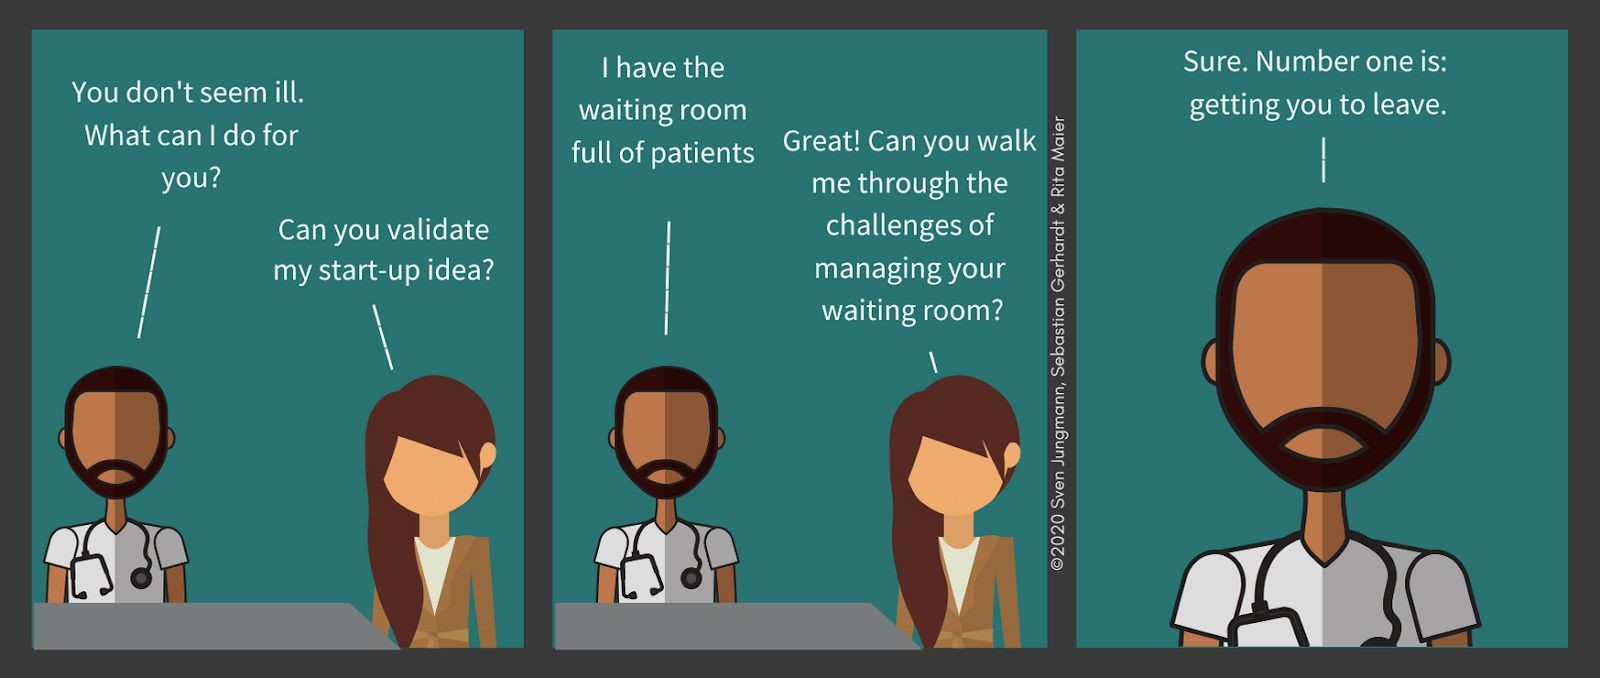 Cartoon strip of a person asking a doctor for advice on how she can start-up her business. However, the doctor says he has a waiting room full of patients, and his first order of his business is to get her to leave.